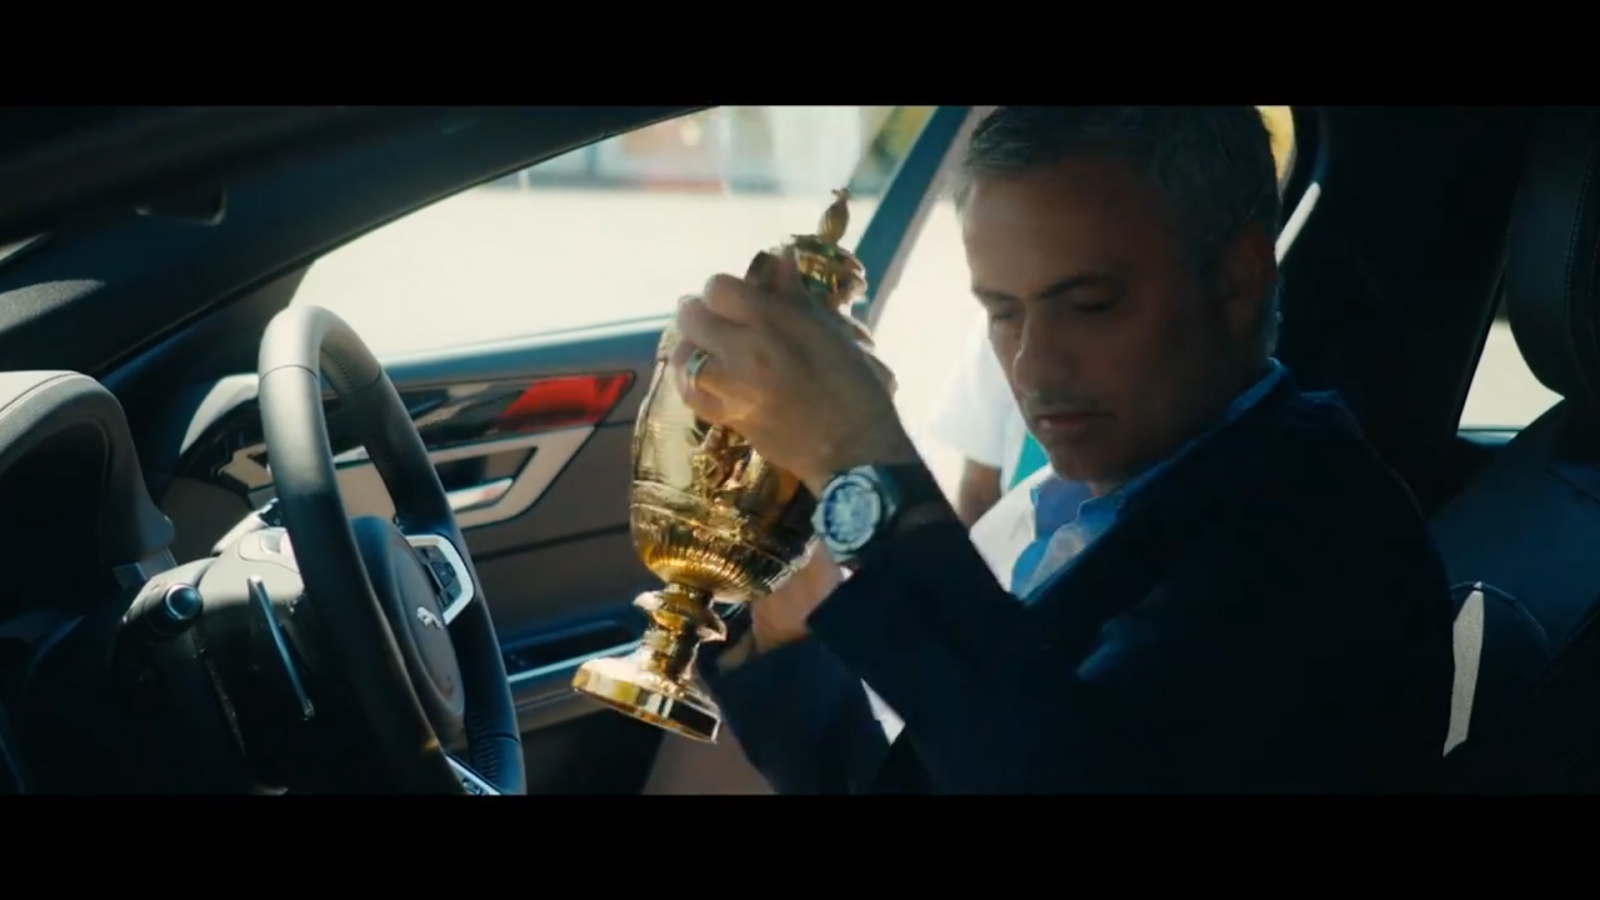 Jose Mourinho steals Andy Murray's Wimbledon trophy